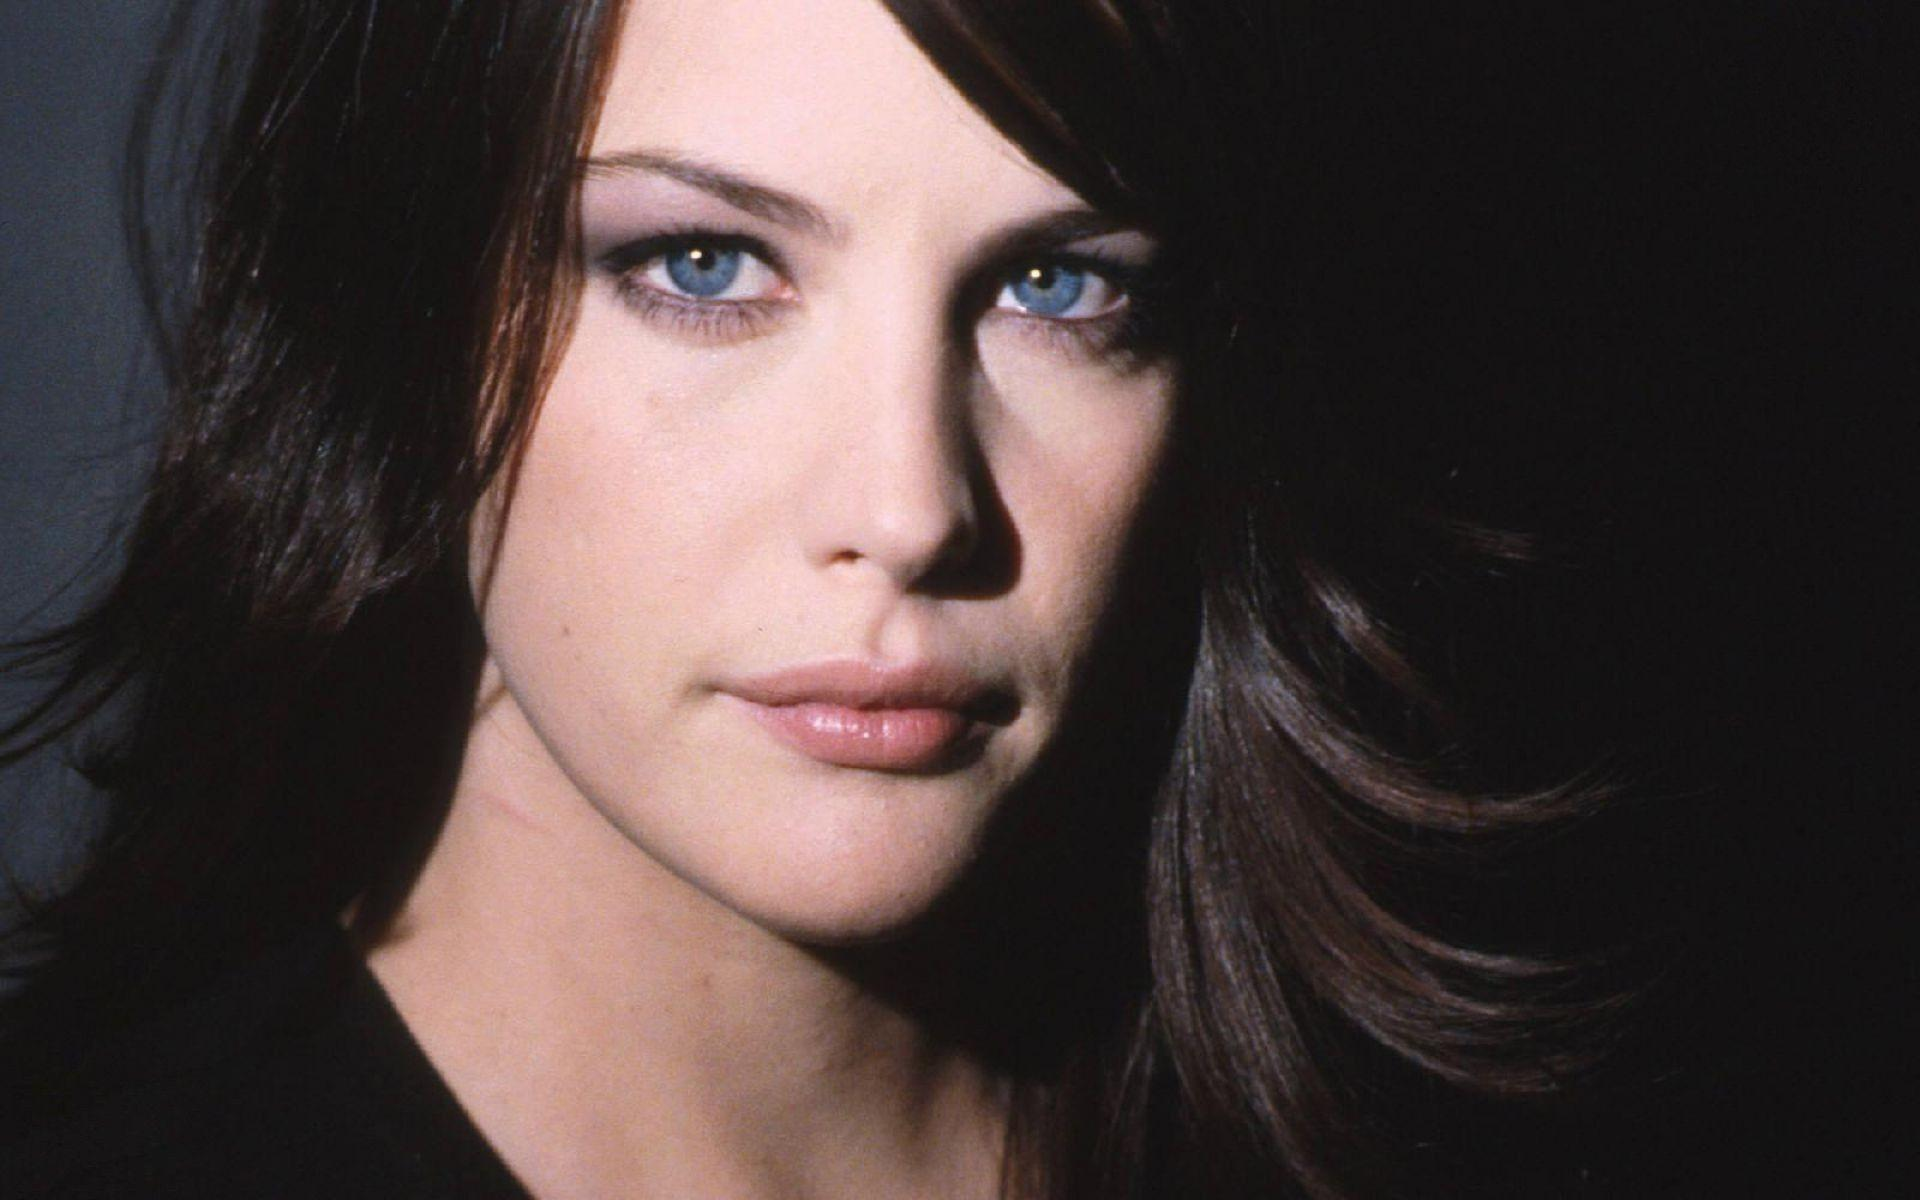 J2495 Liv Tyler Wallpapers and Pictures